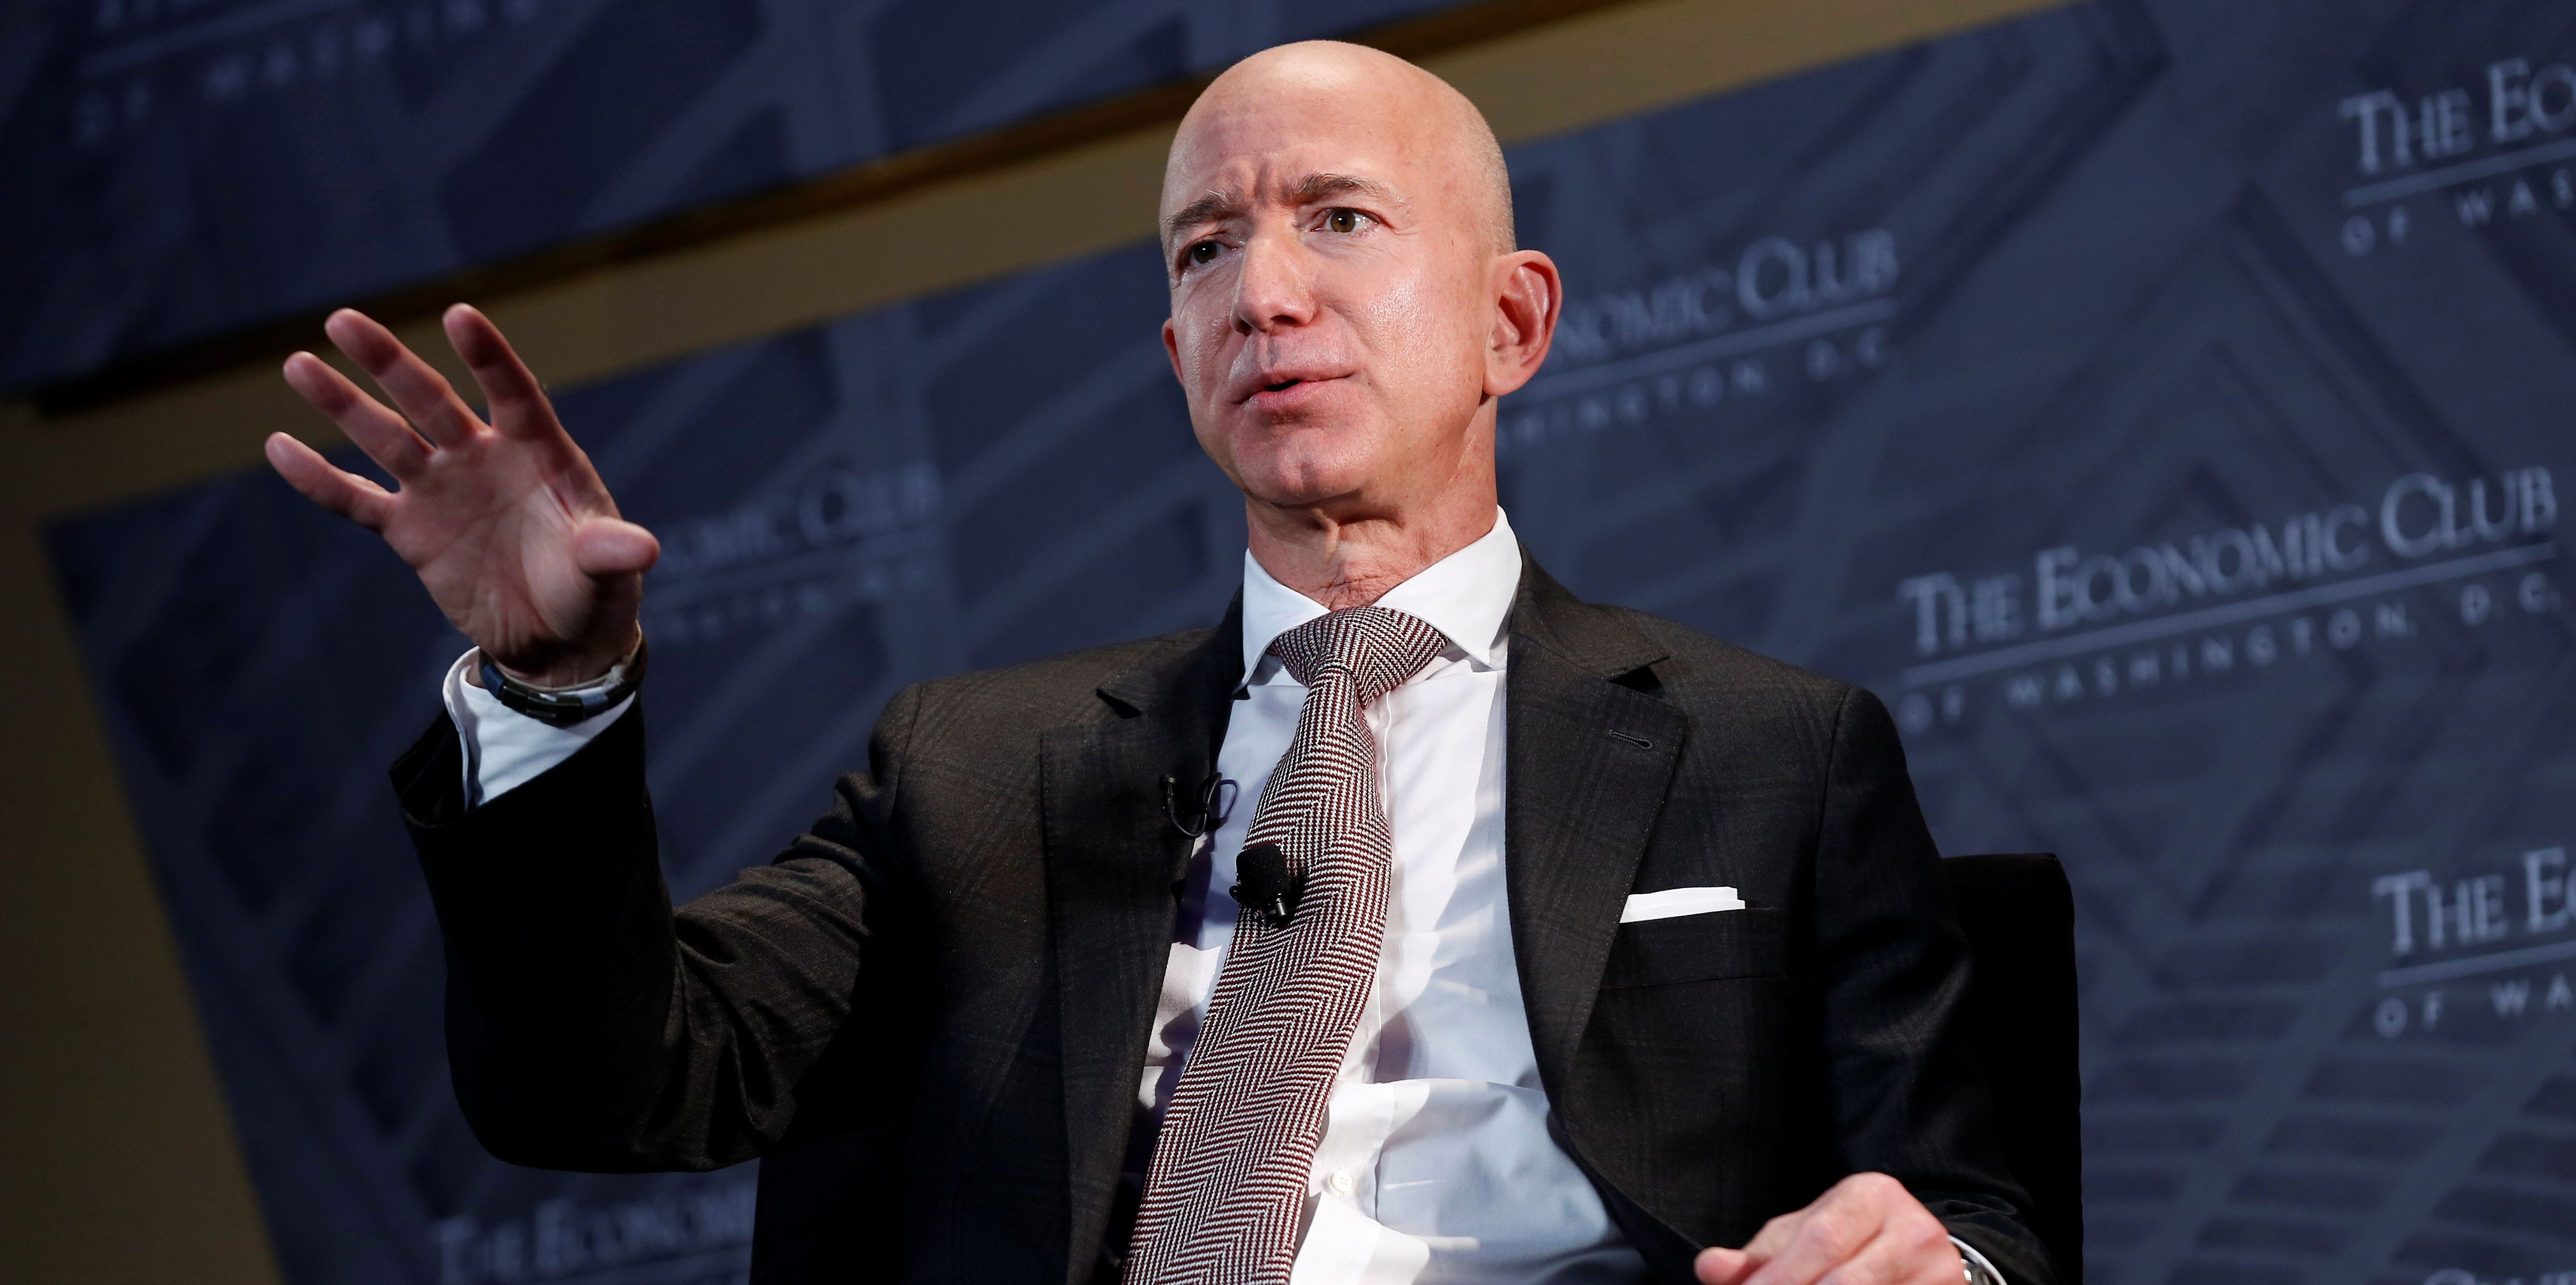 Jeff Bezos Only Expects Himself To Make Three Good Decisions A Day